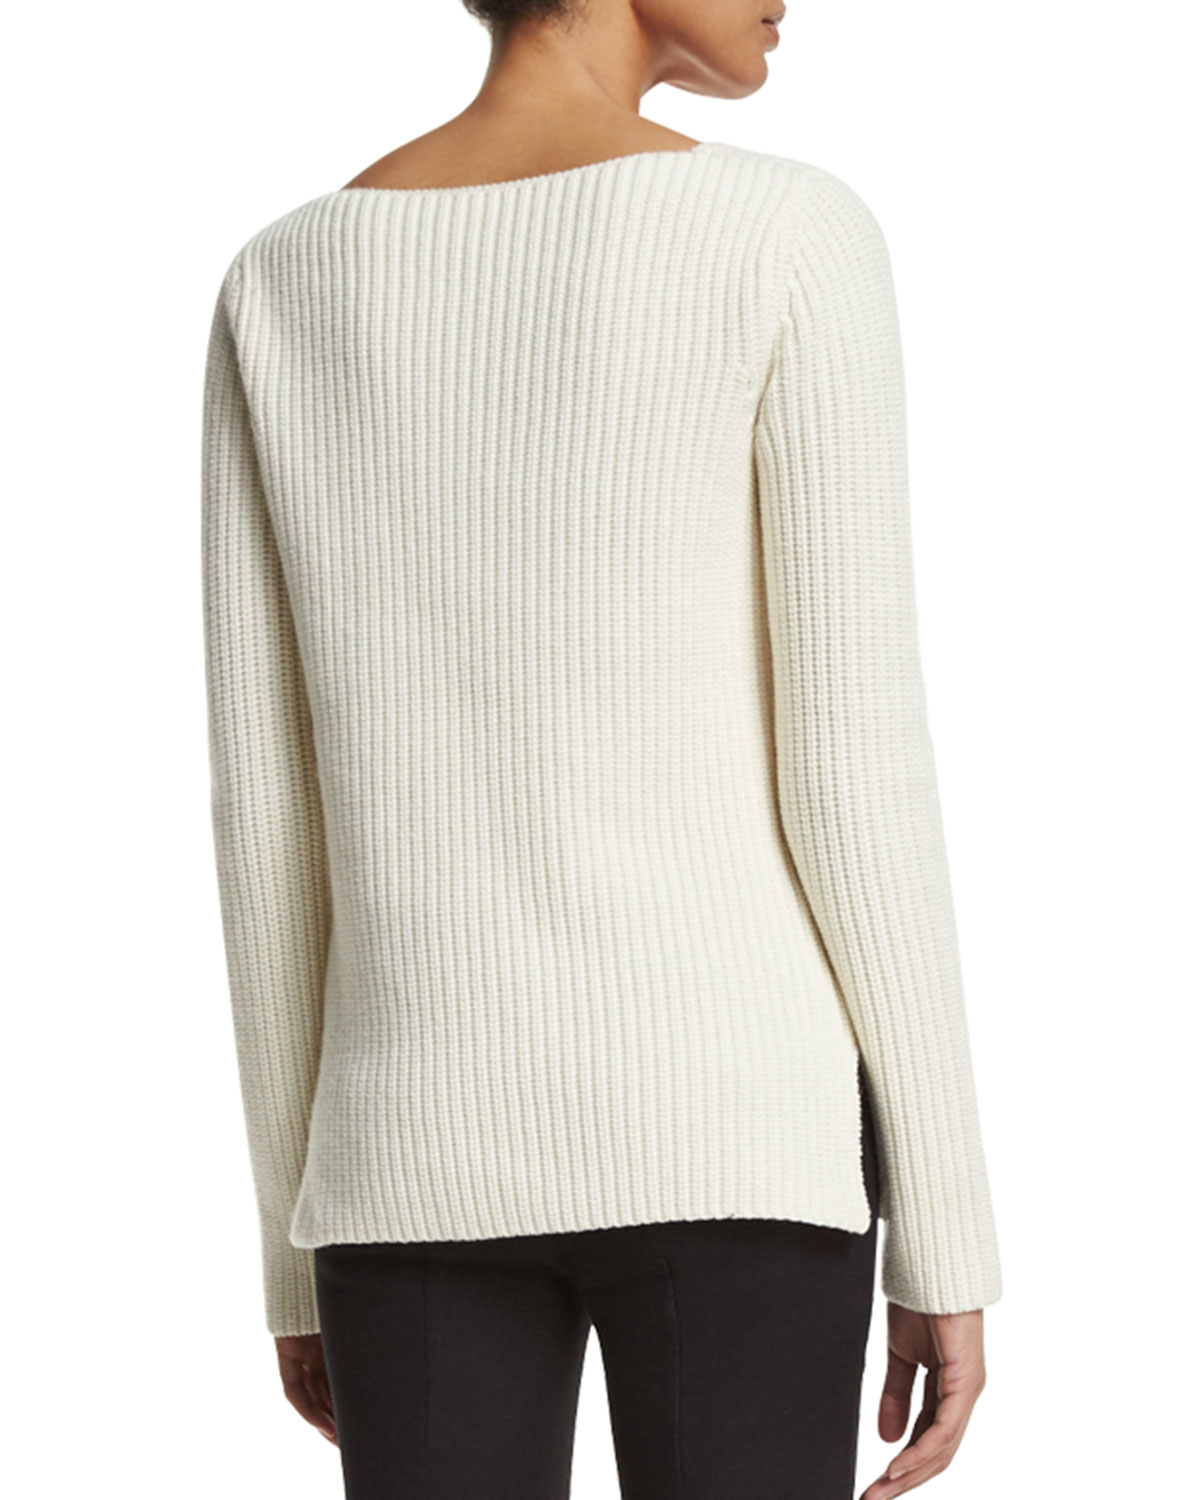 Sweaters + Cardigans for Women Cozy up in an oversized sweater from Urban Outfitters' selection of women's sweaters and cardigans. Find a new closet staple with our wide selection of chunky knits and button-down cardigan styles.